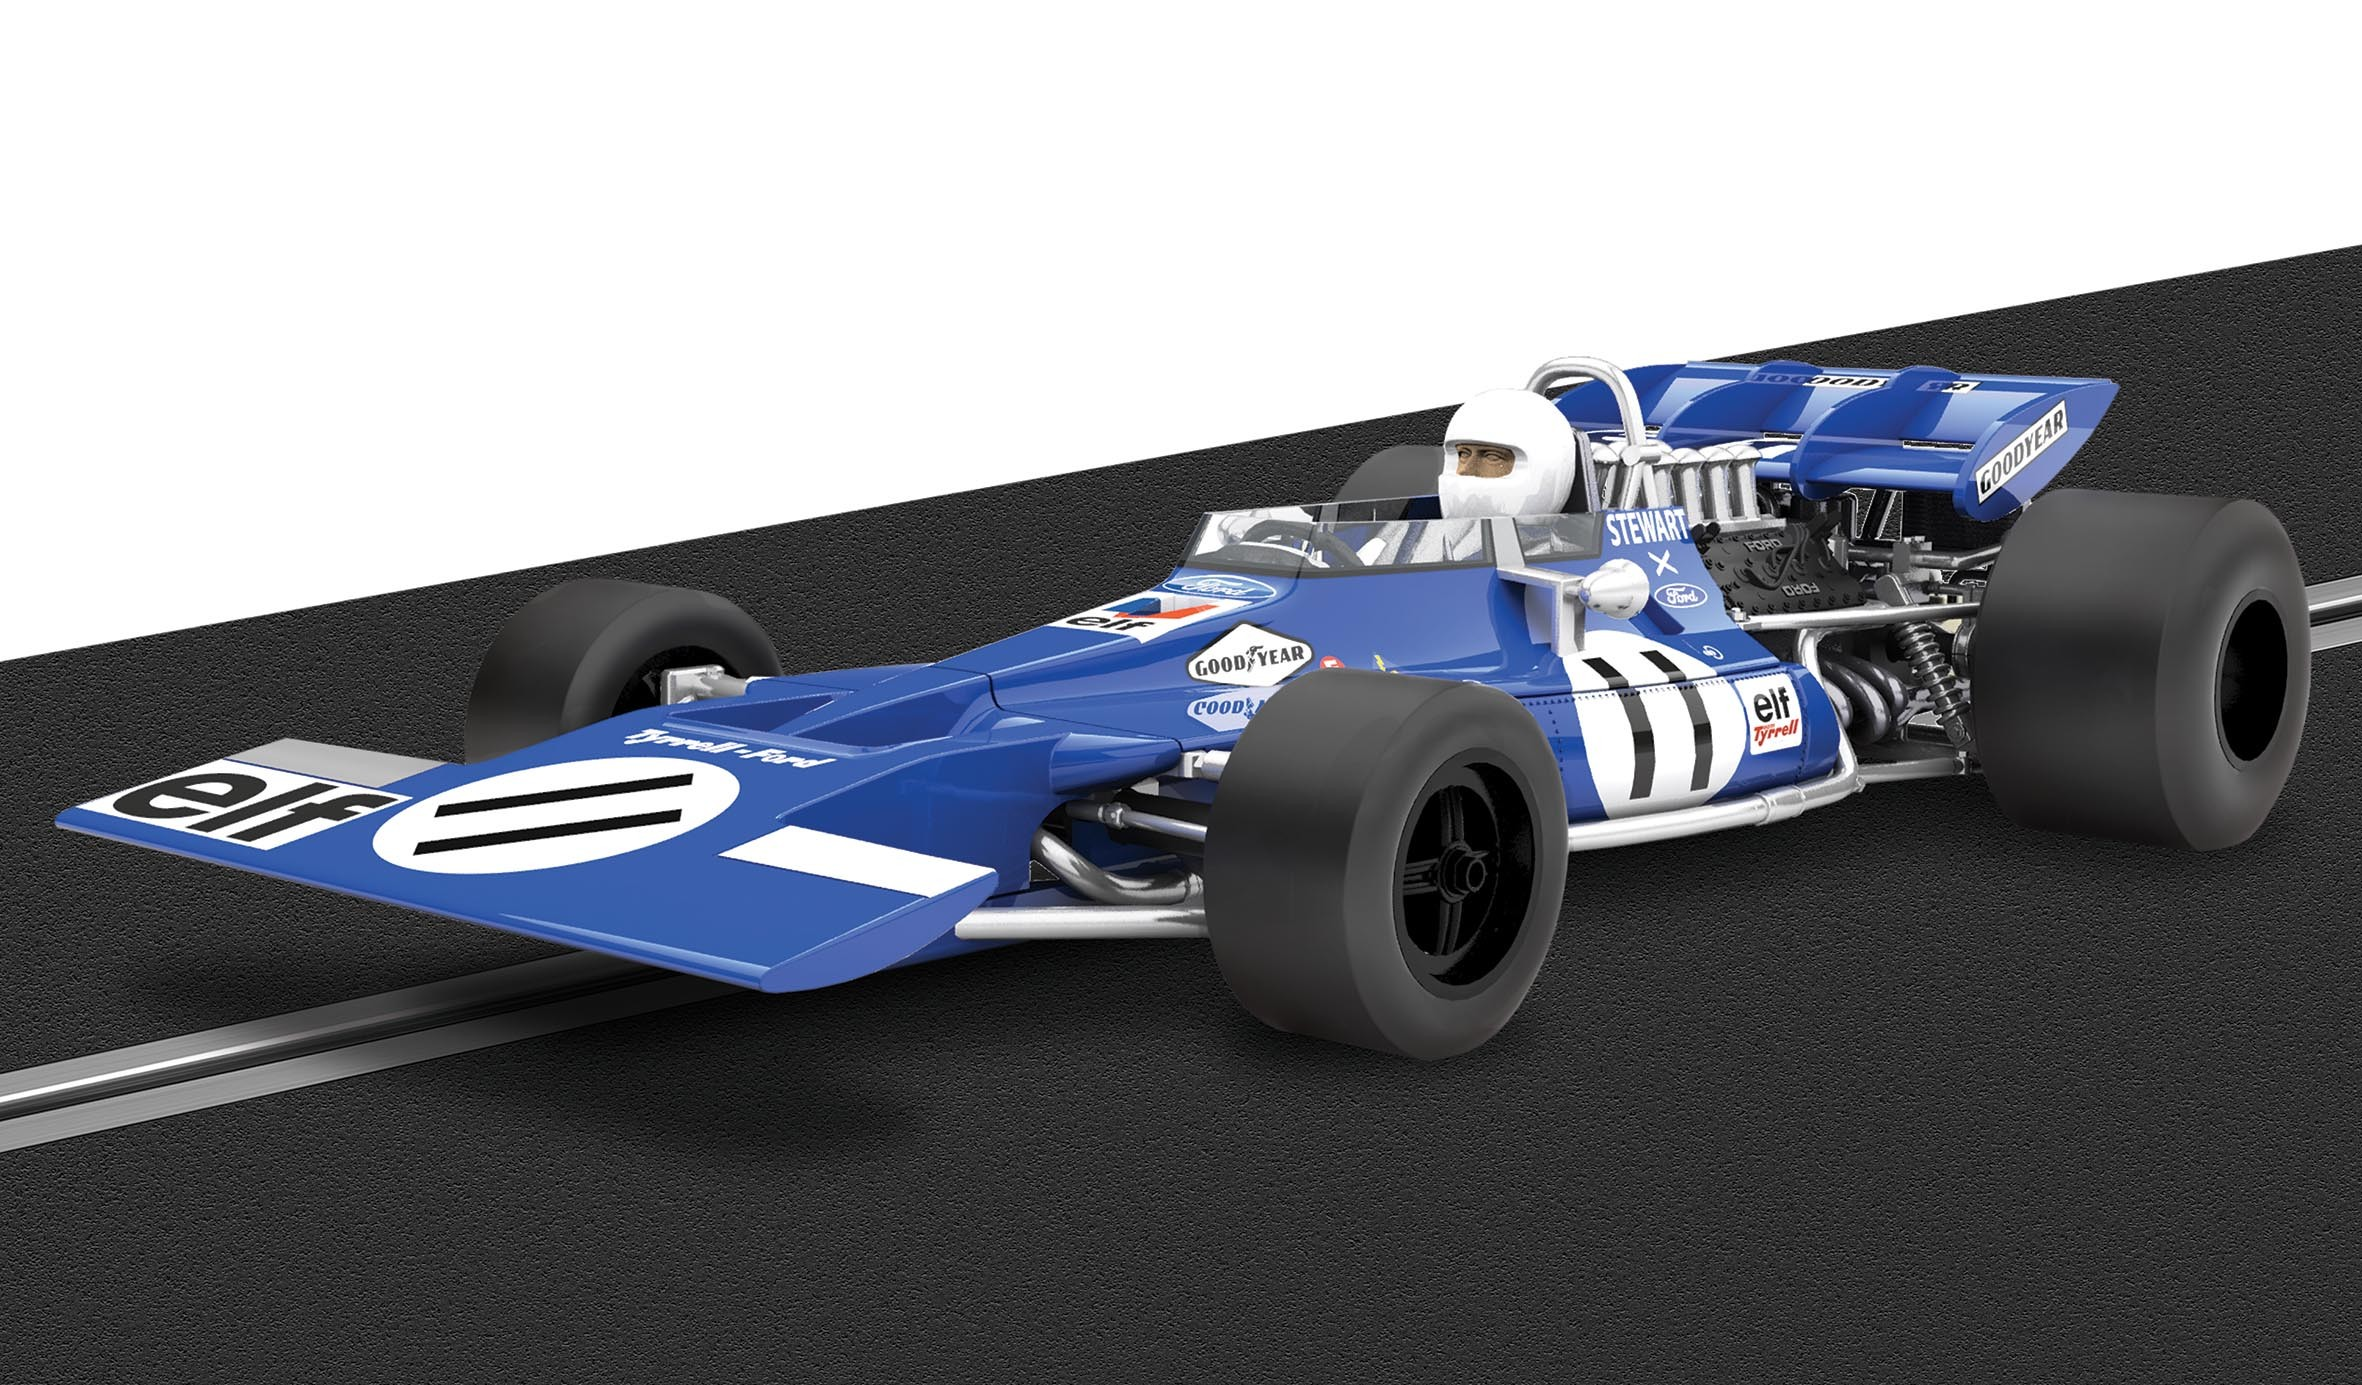 c3566a_tyrrell_solo_on_track